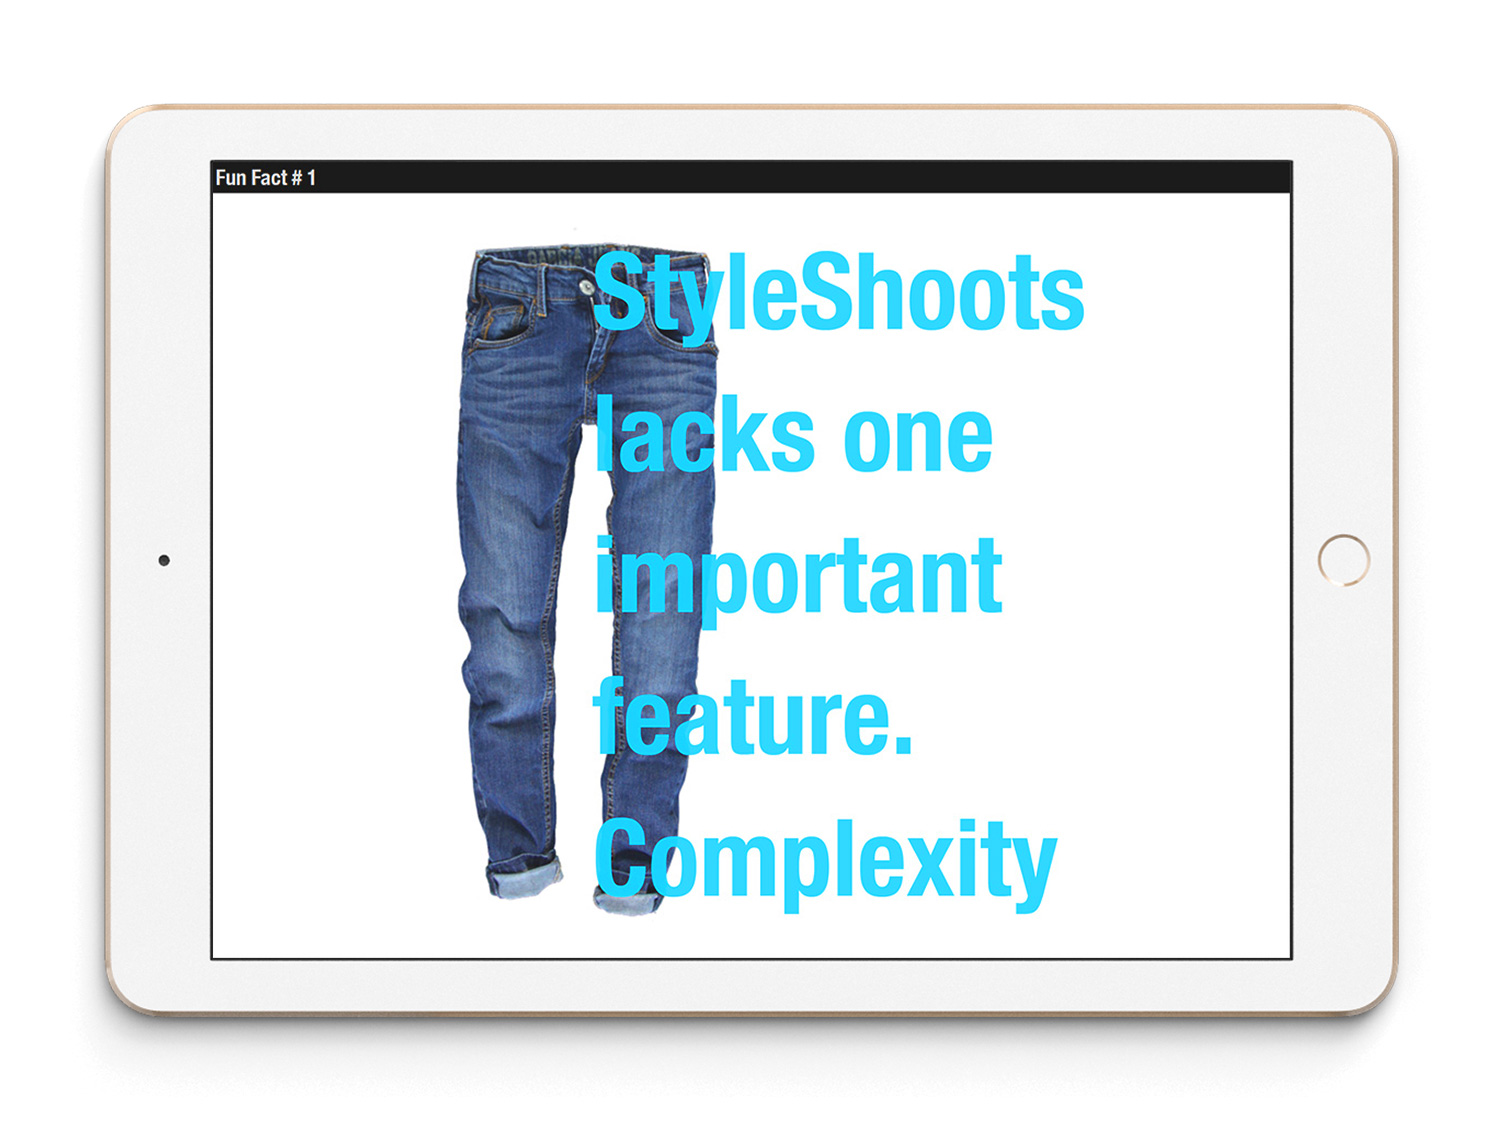 StyleShoots User Guide  IXD ・Design・Branding   99%, the world's first user guide on the iBookstore. Users learn in an engaging way how to interact with StyleShoots' product, the revolutionary all-in-one photography studio.